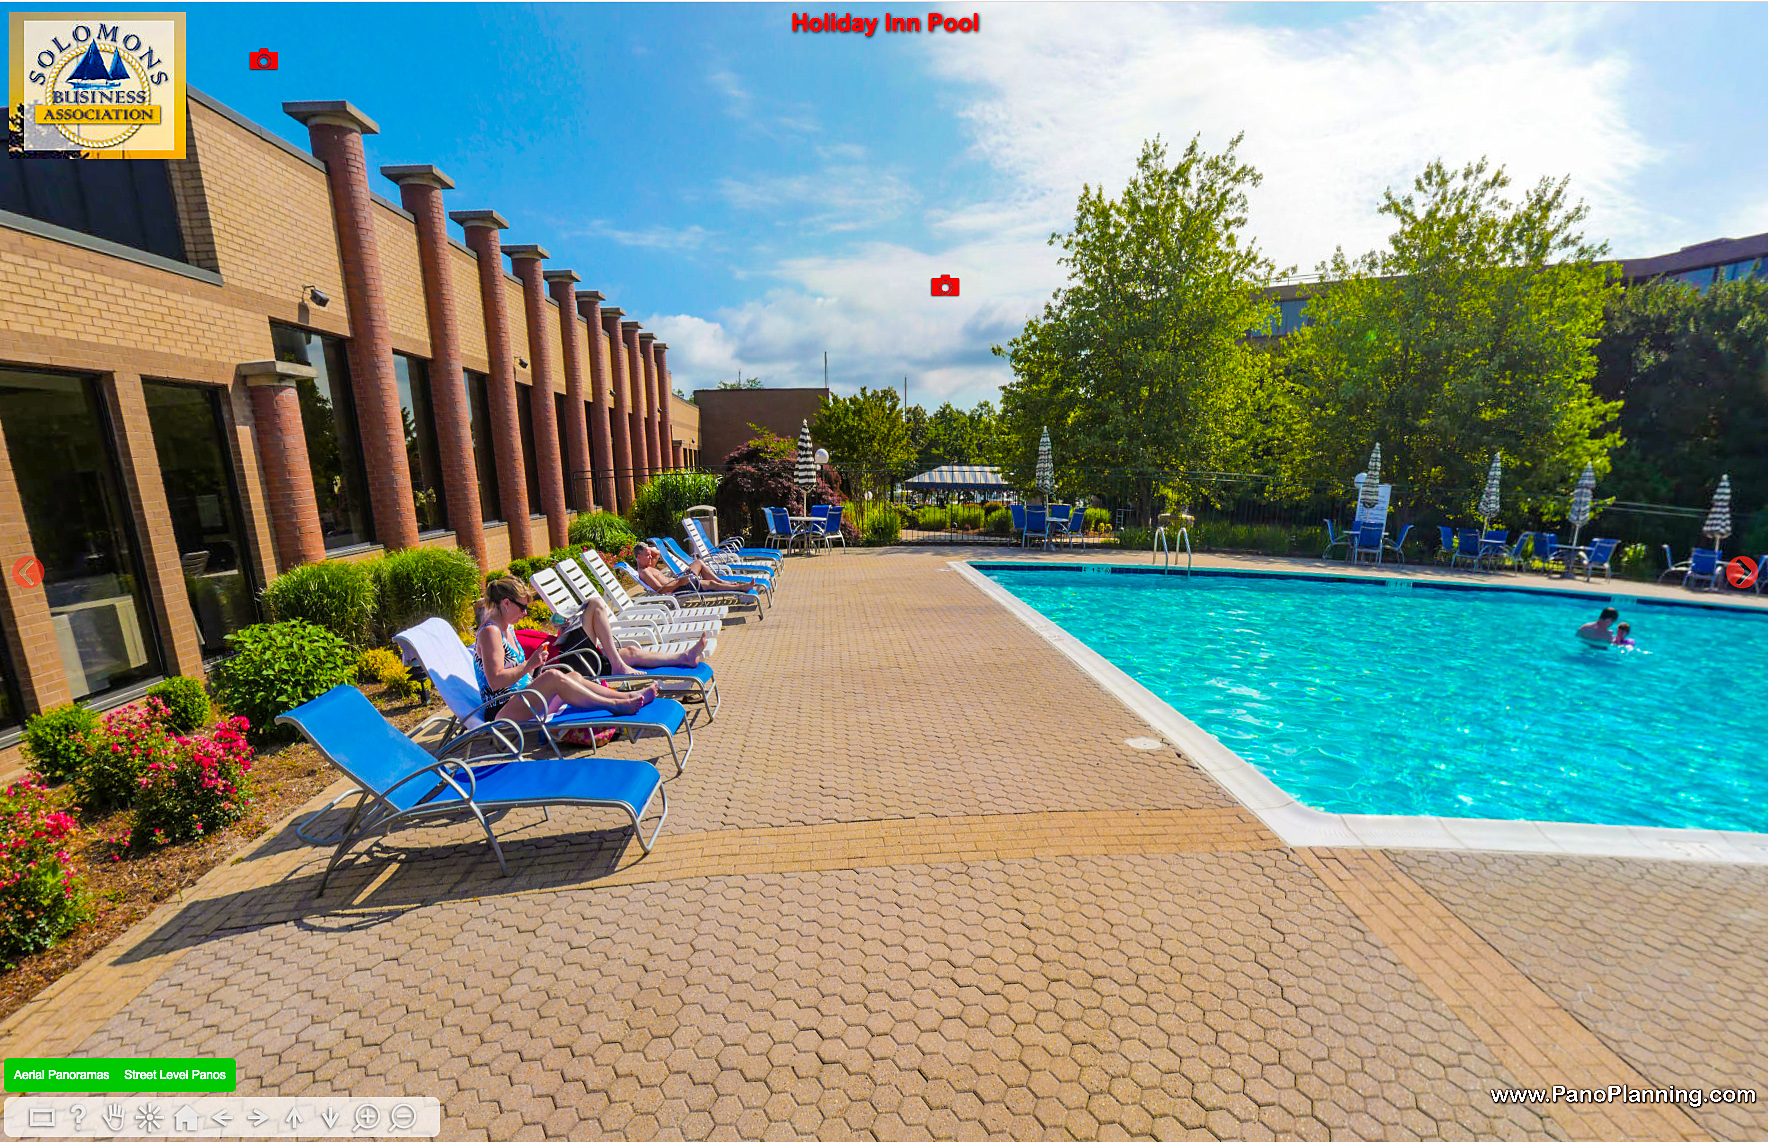 Holiday Inn pool, Solomons, Maryland.